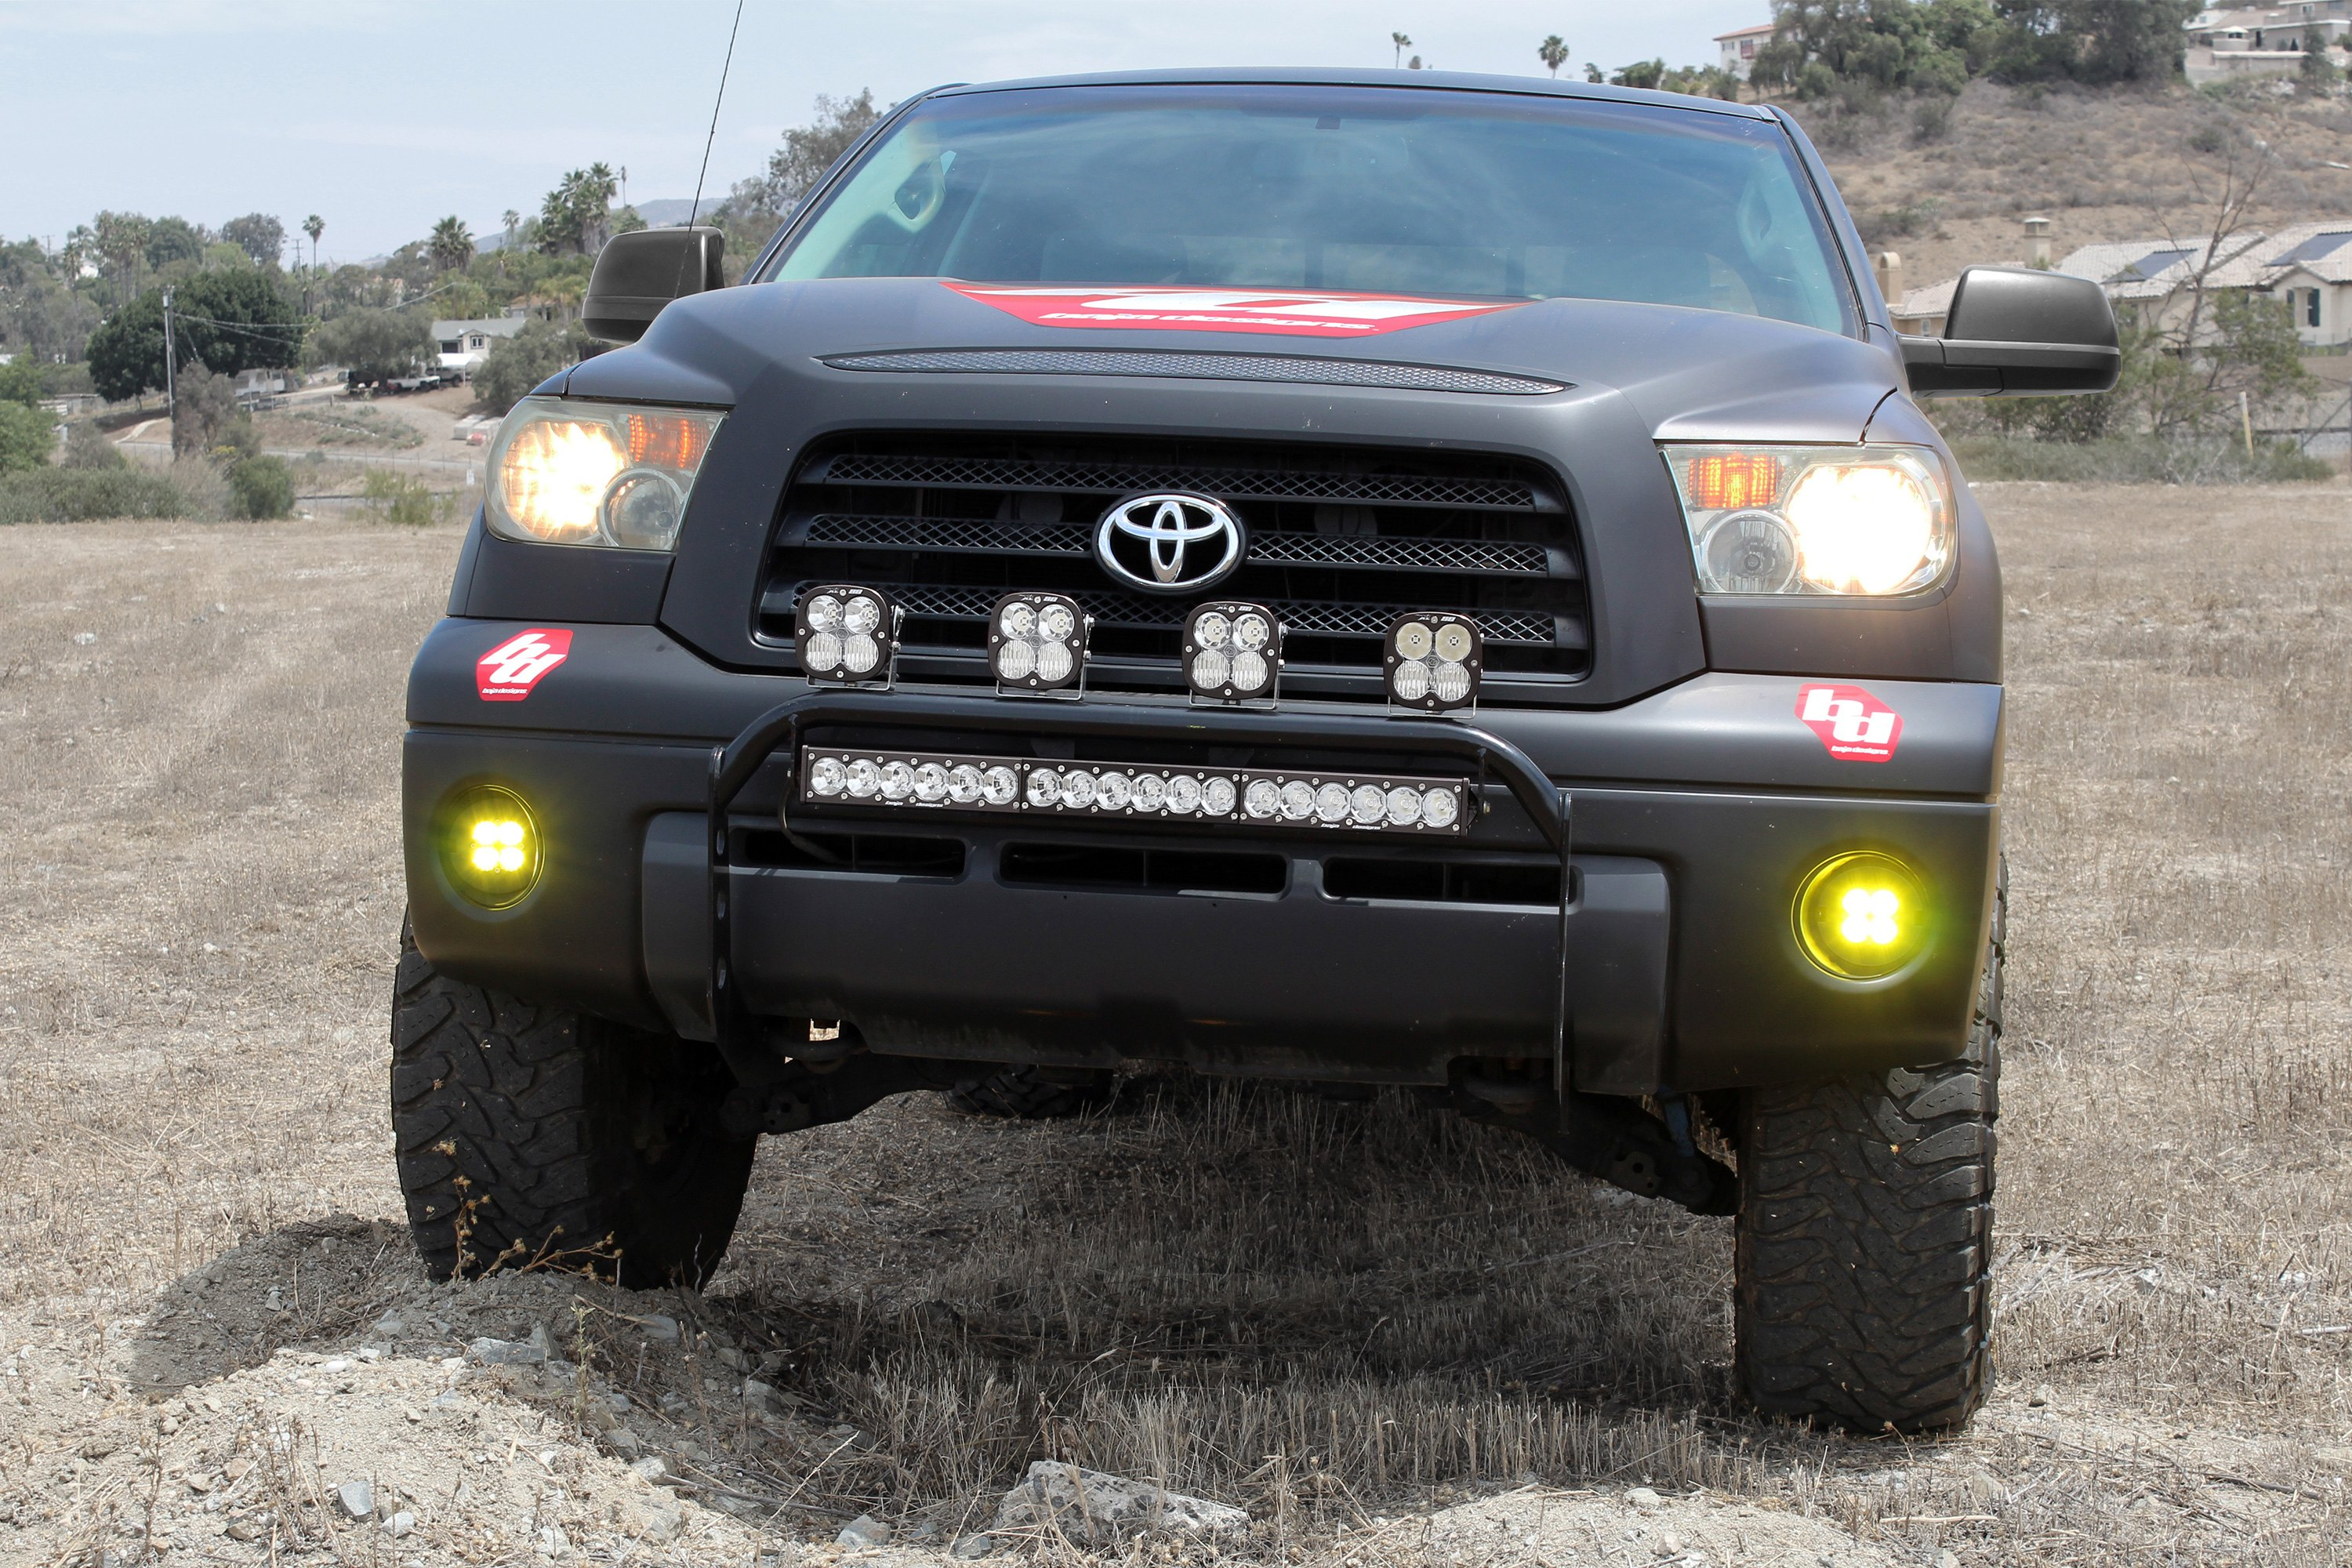 Baja designs onx6 led light bar installed baja designs onx6 led light bar mozeypictures Choice Image